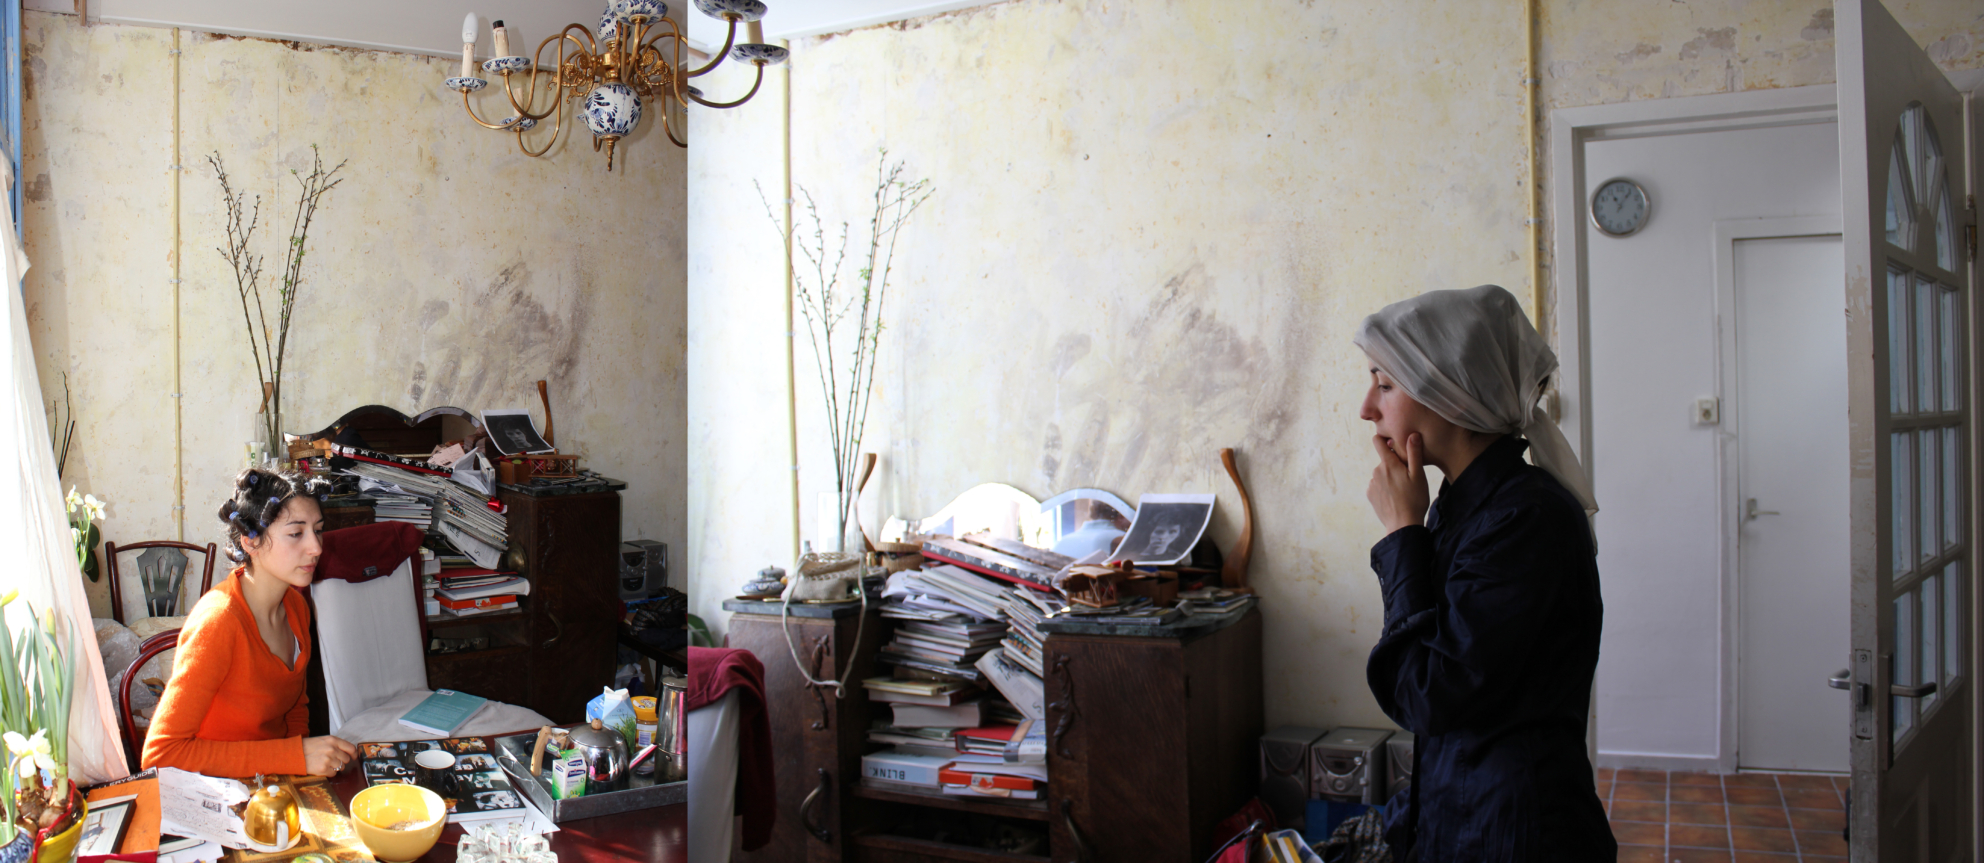 Two woman in a domestic space that has been created through a montage.